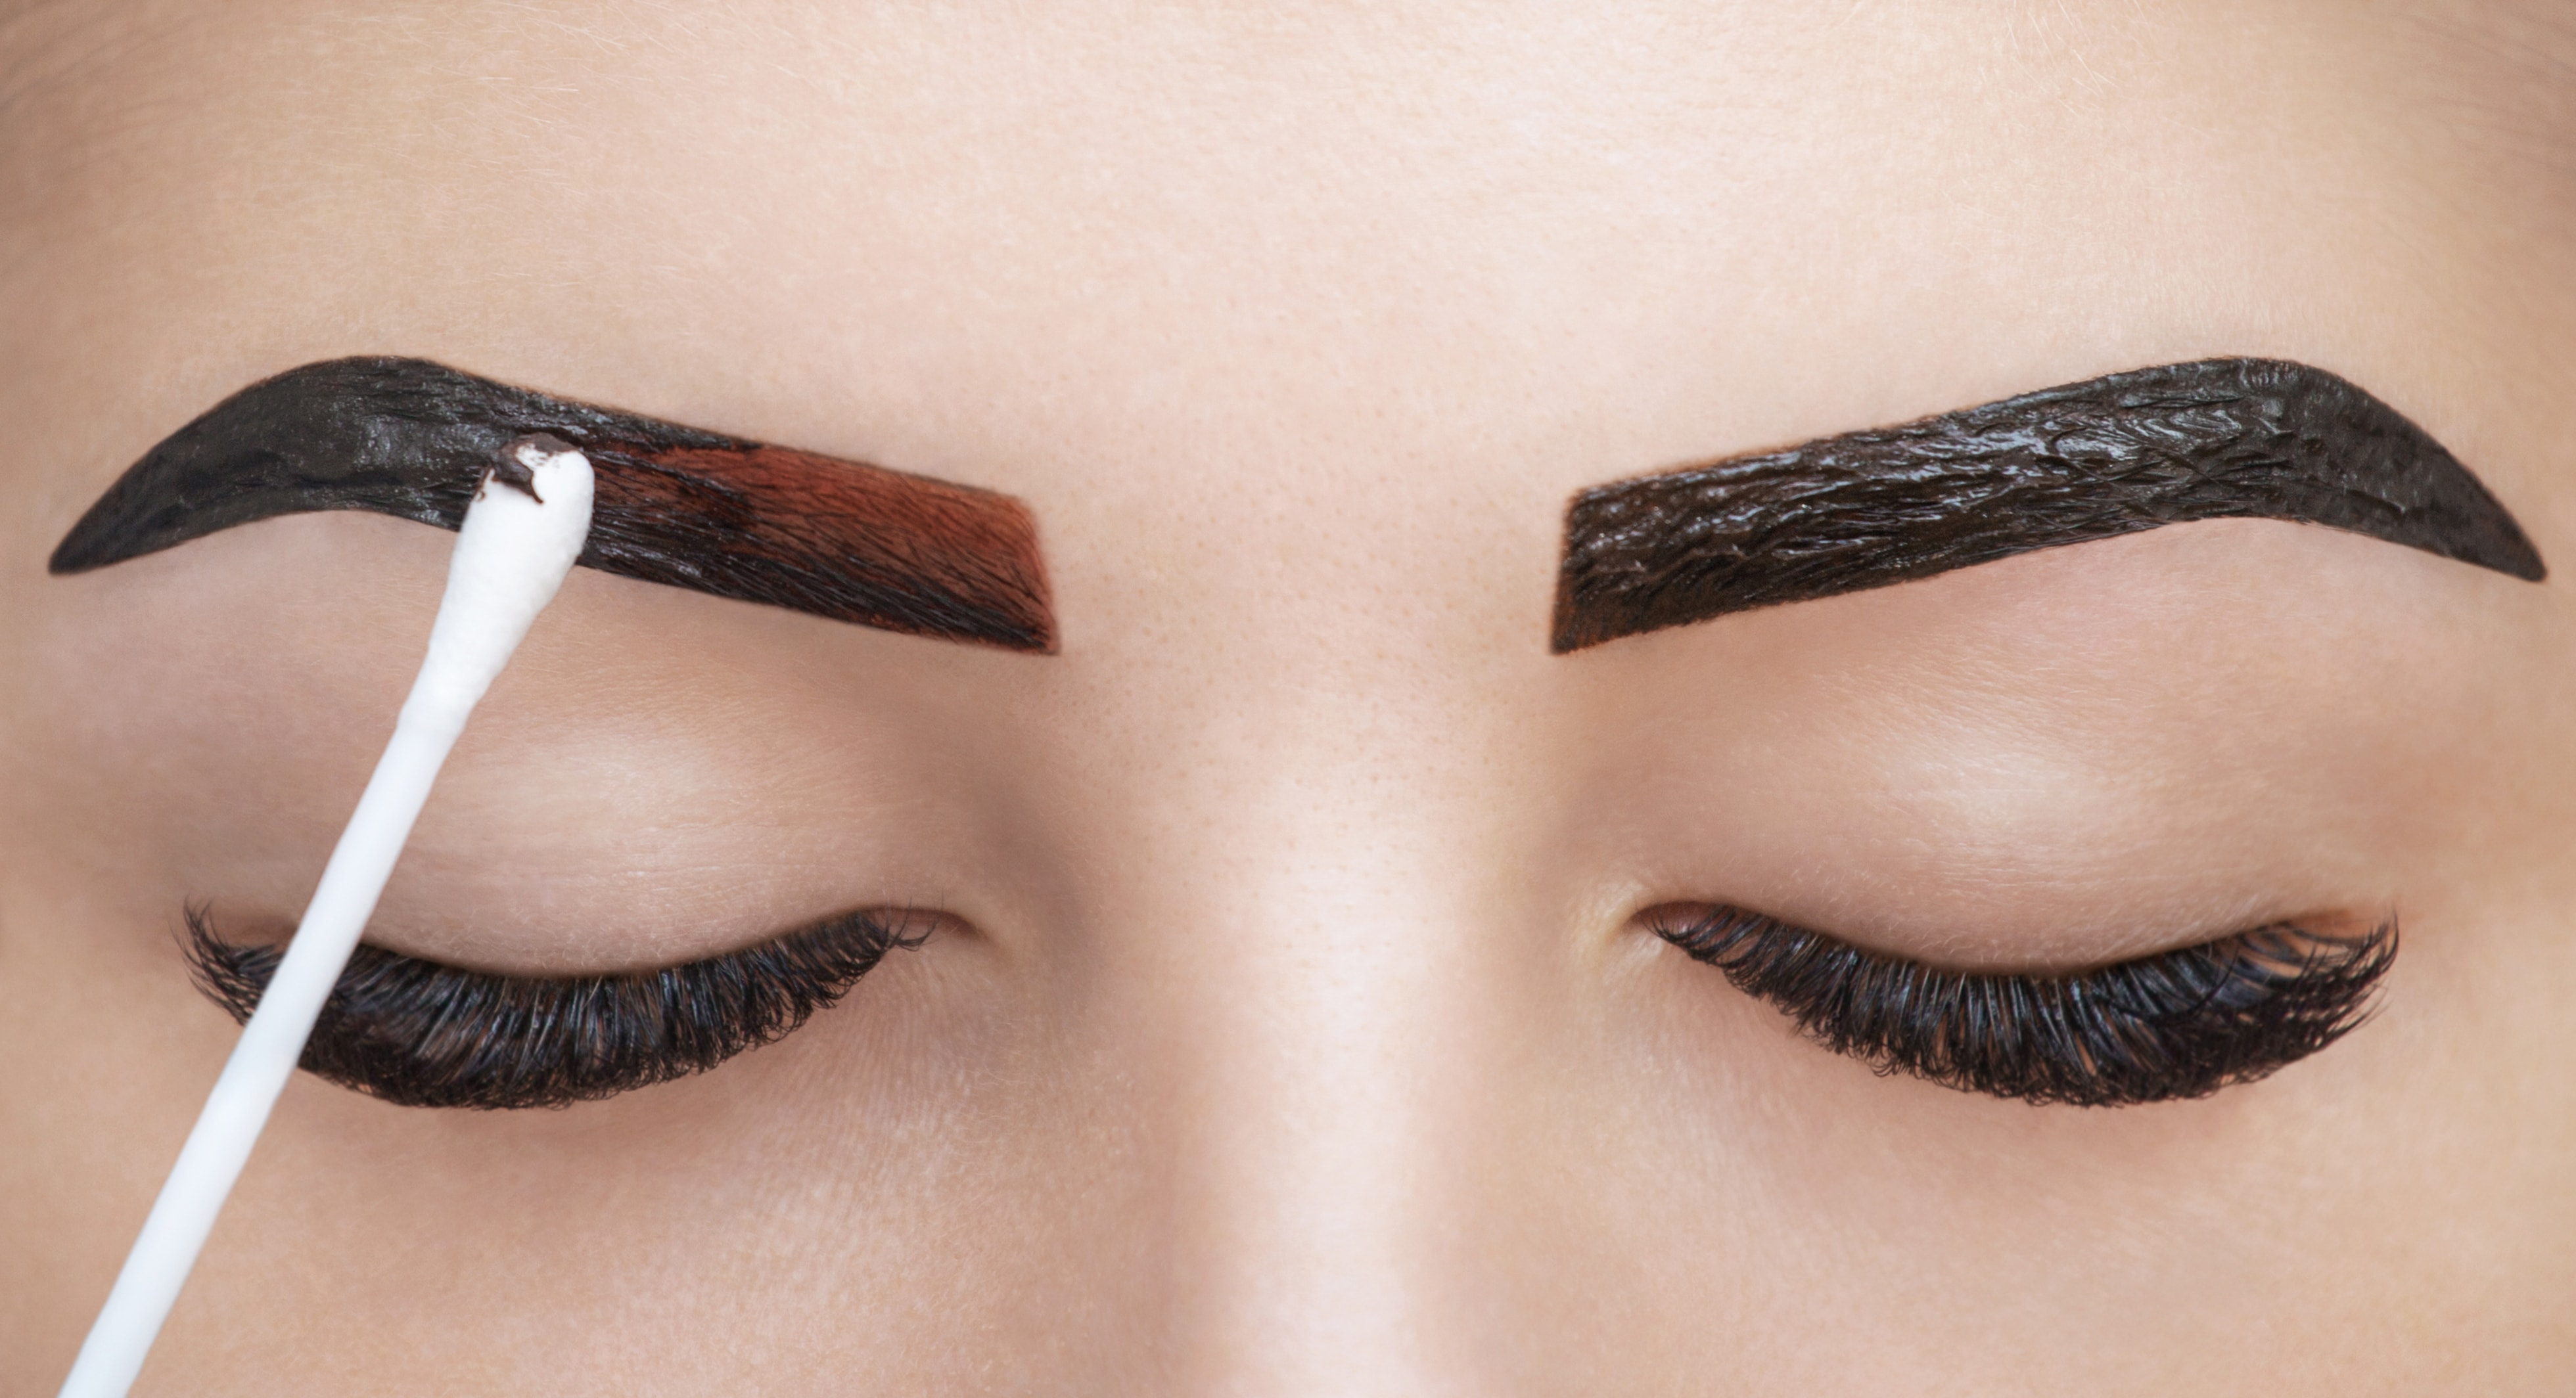 Eyebrow Tinting Glitz Thread Sugarwax Studio